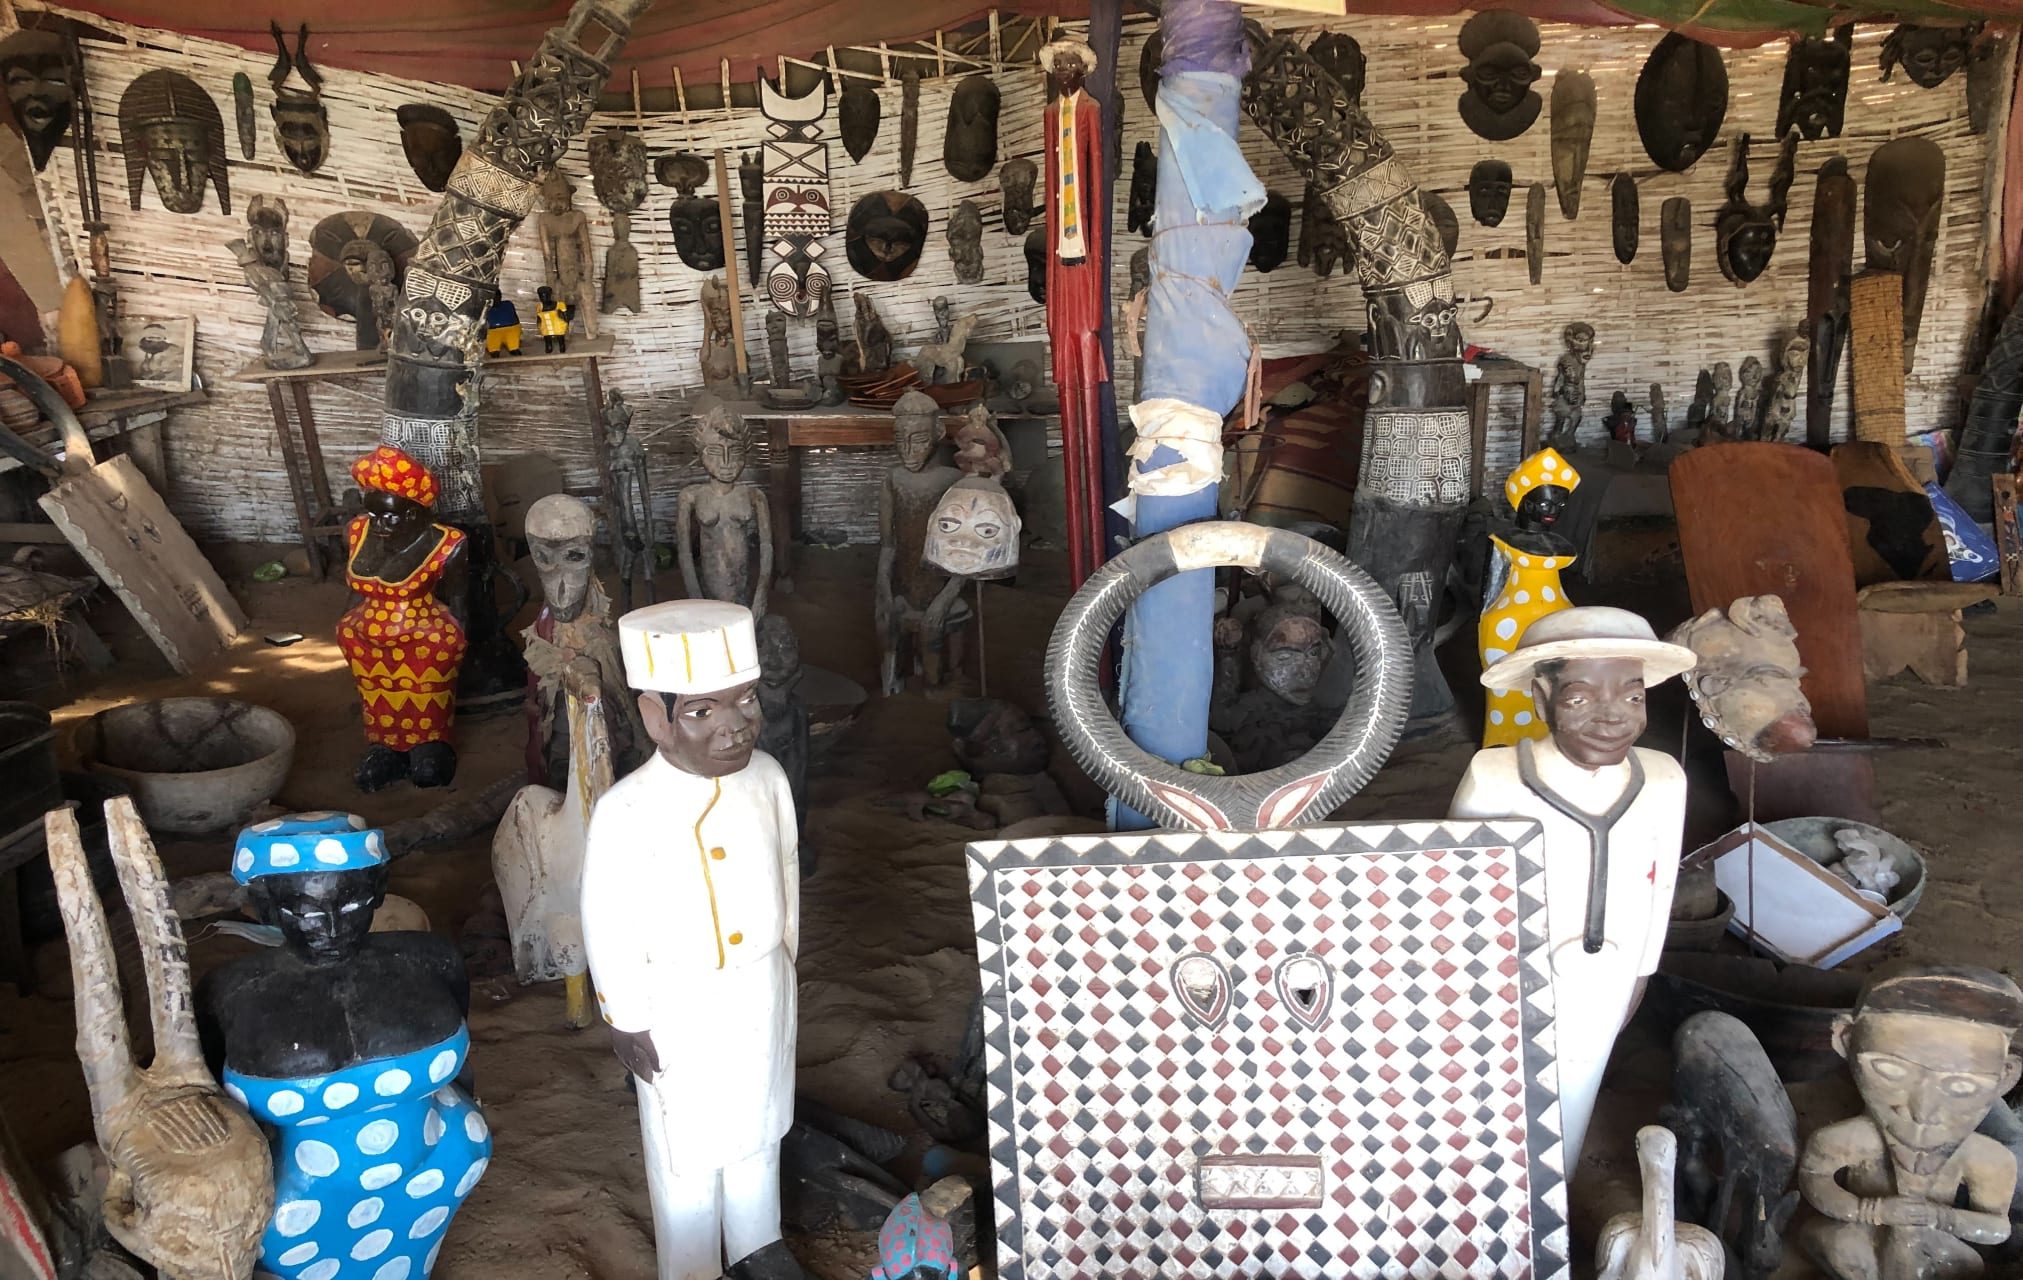 St Louis, Senegal - Discovering a Talented Sculptor From St. Louis